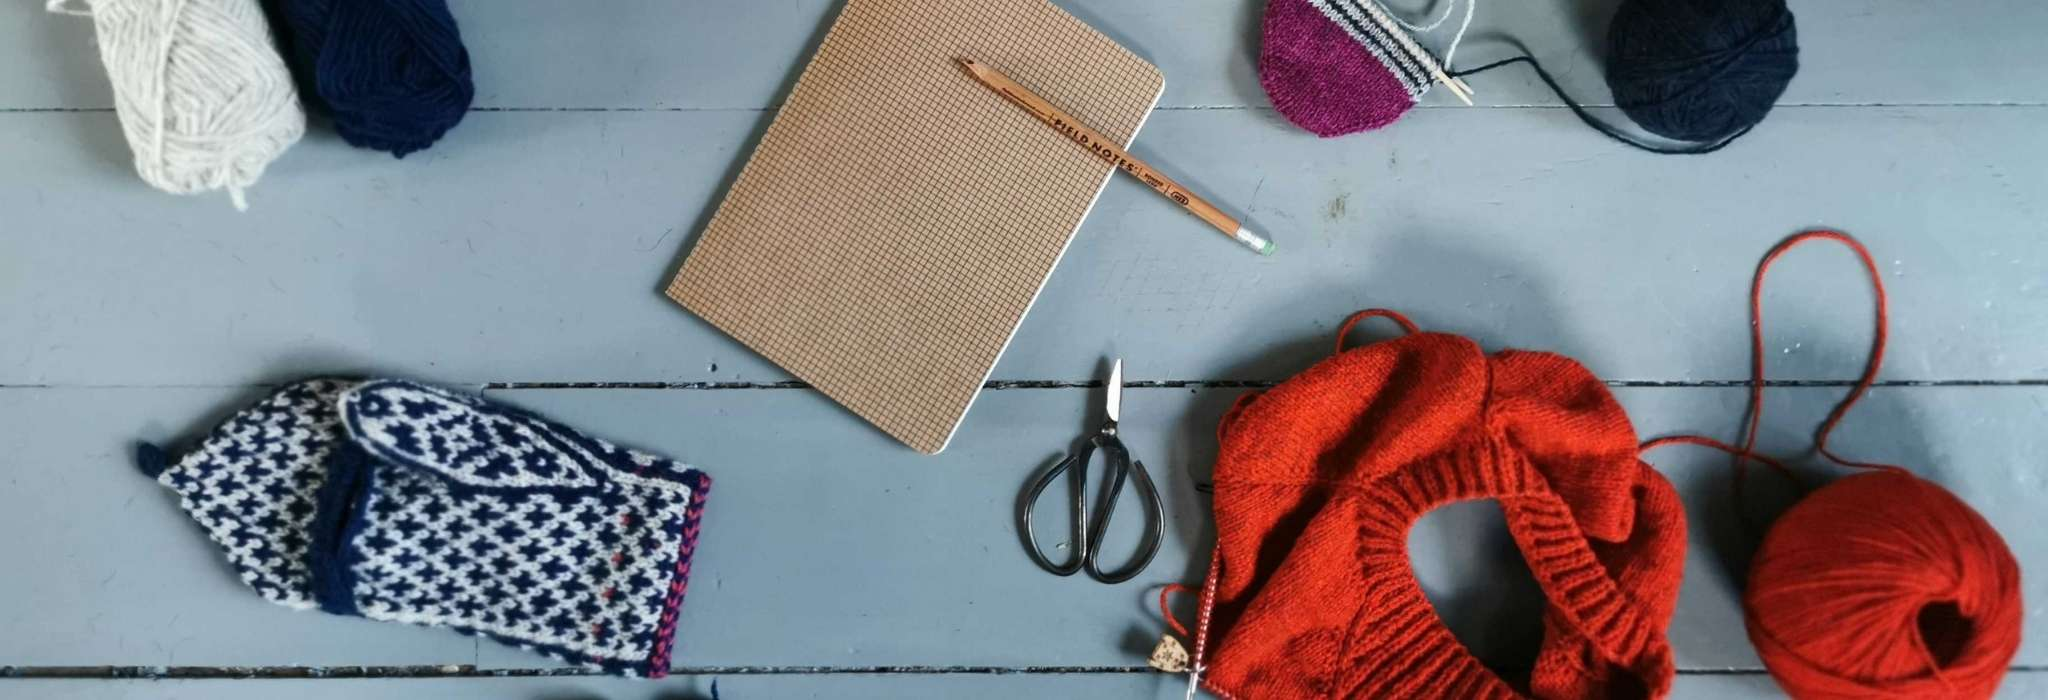 A grey wooden floor with balls of yarn, one unfinished navy and white mitten, a brown notebook and pencil, a small pair of scissors, and an orange sweater in progress next to a ball of orange yarn.